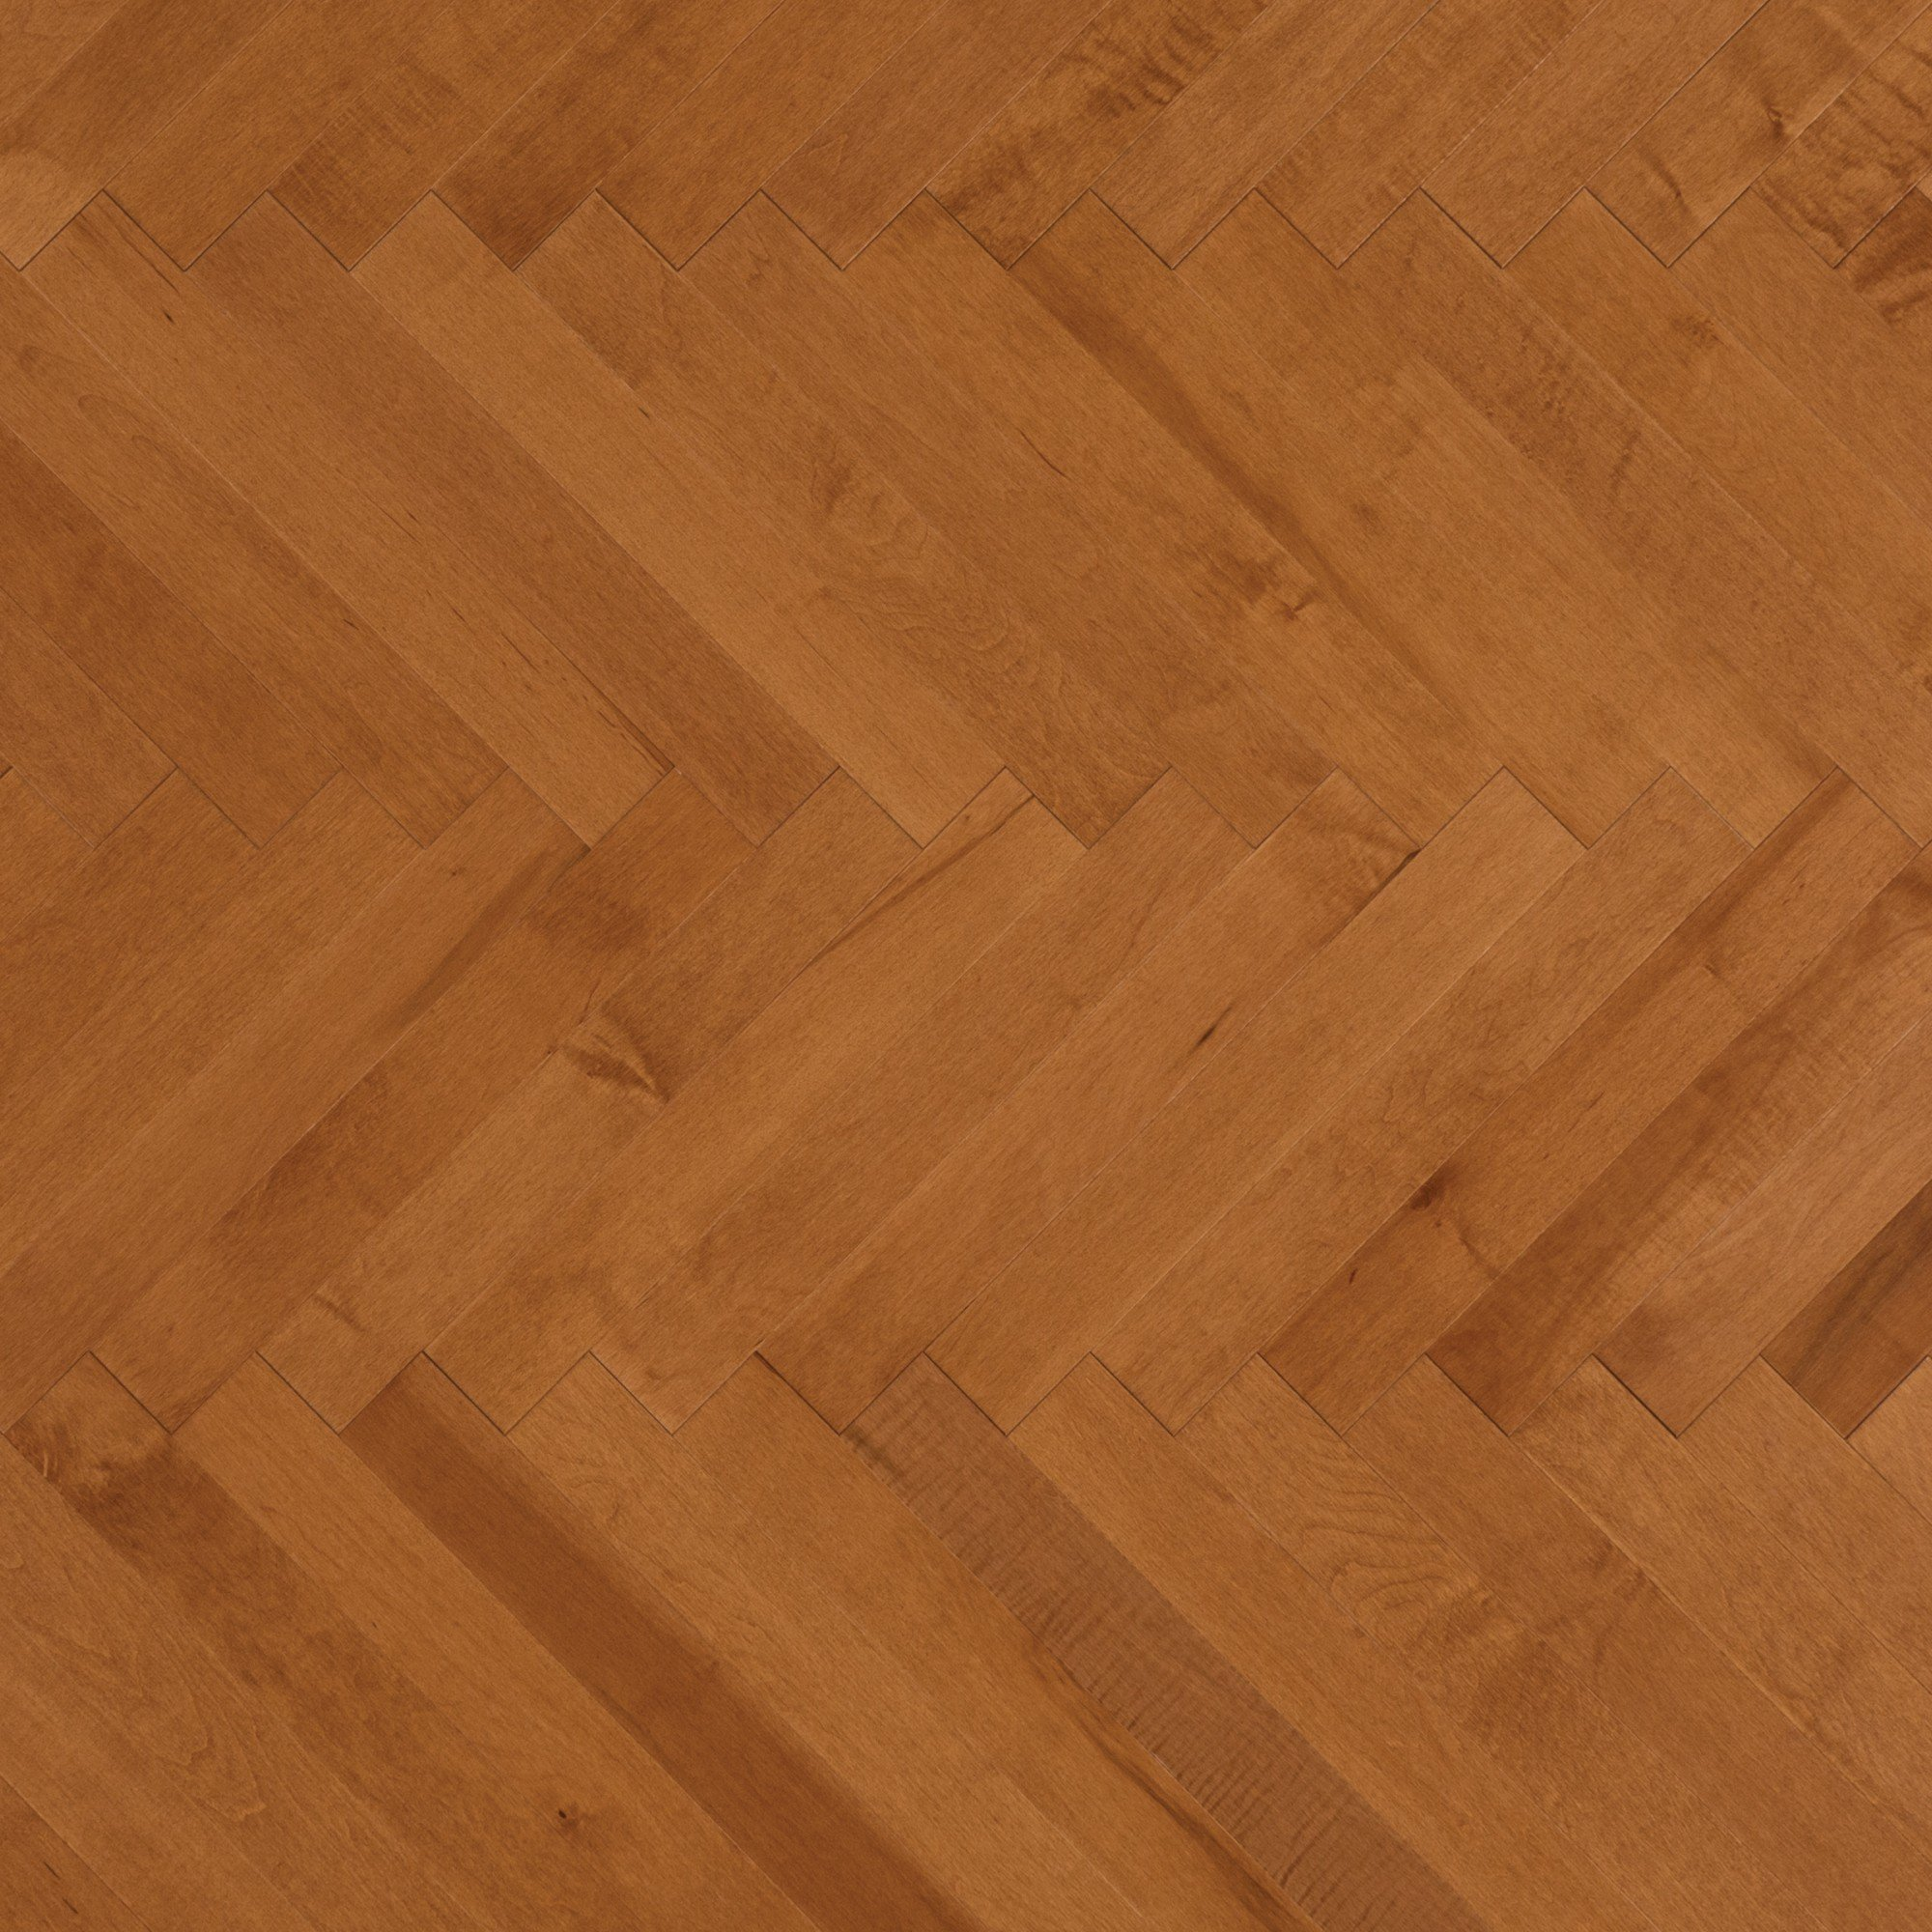 Maple Nevada - Floor image